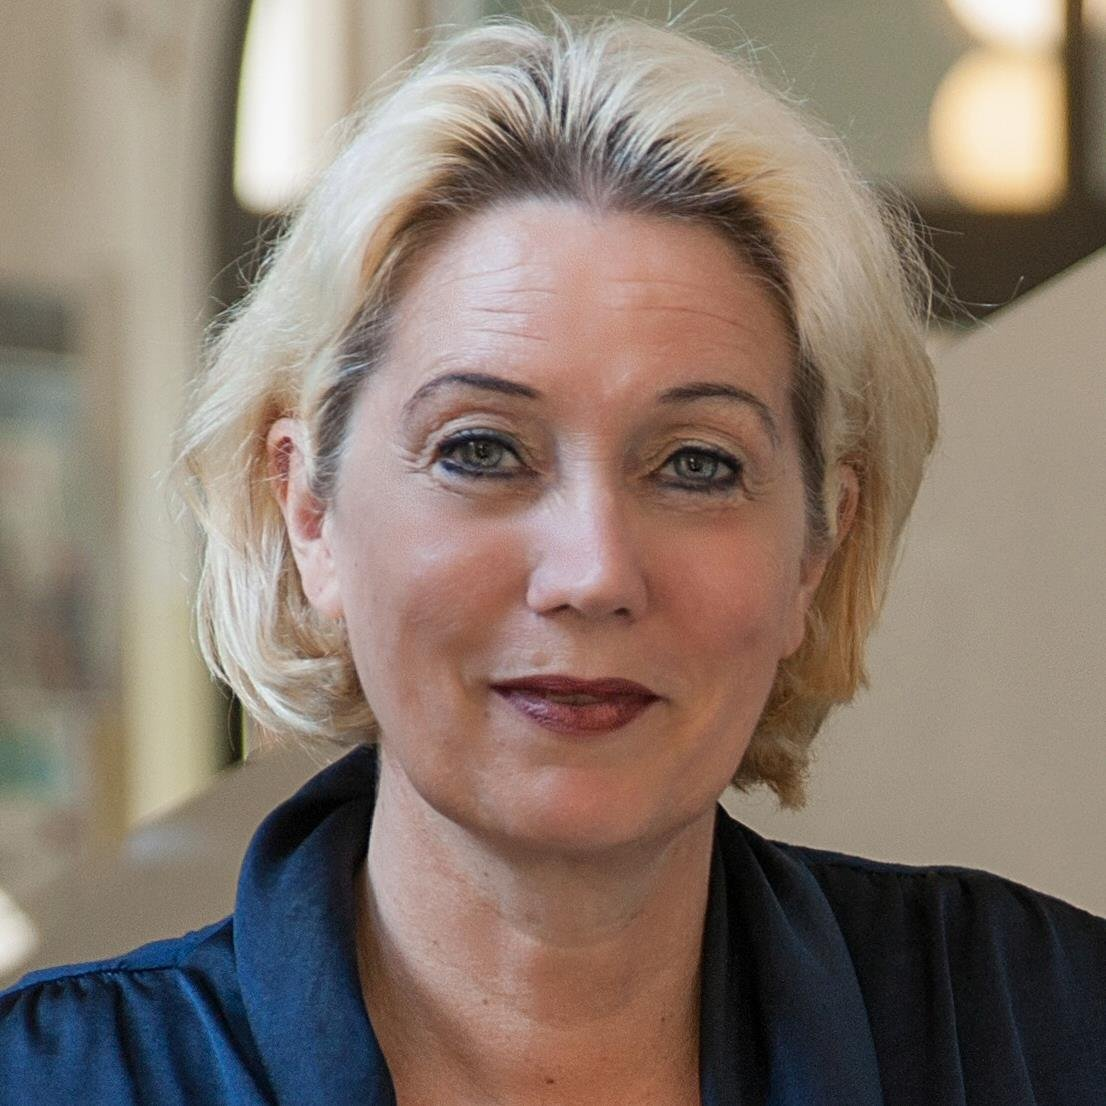 Wethouder Annelies Usmany